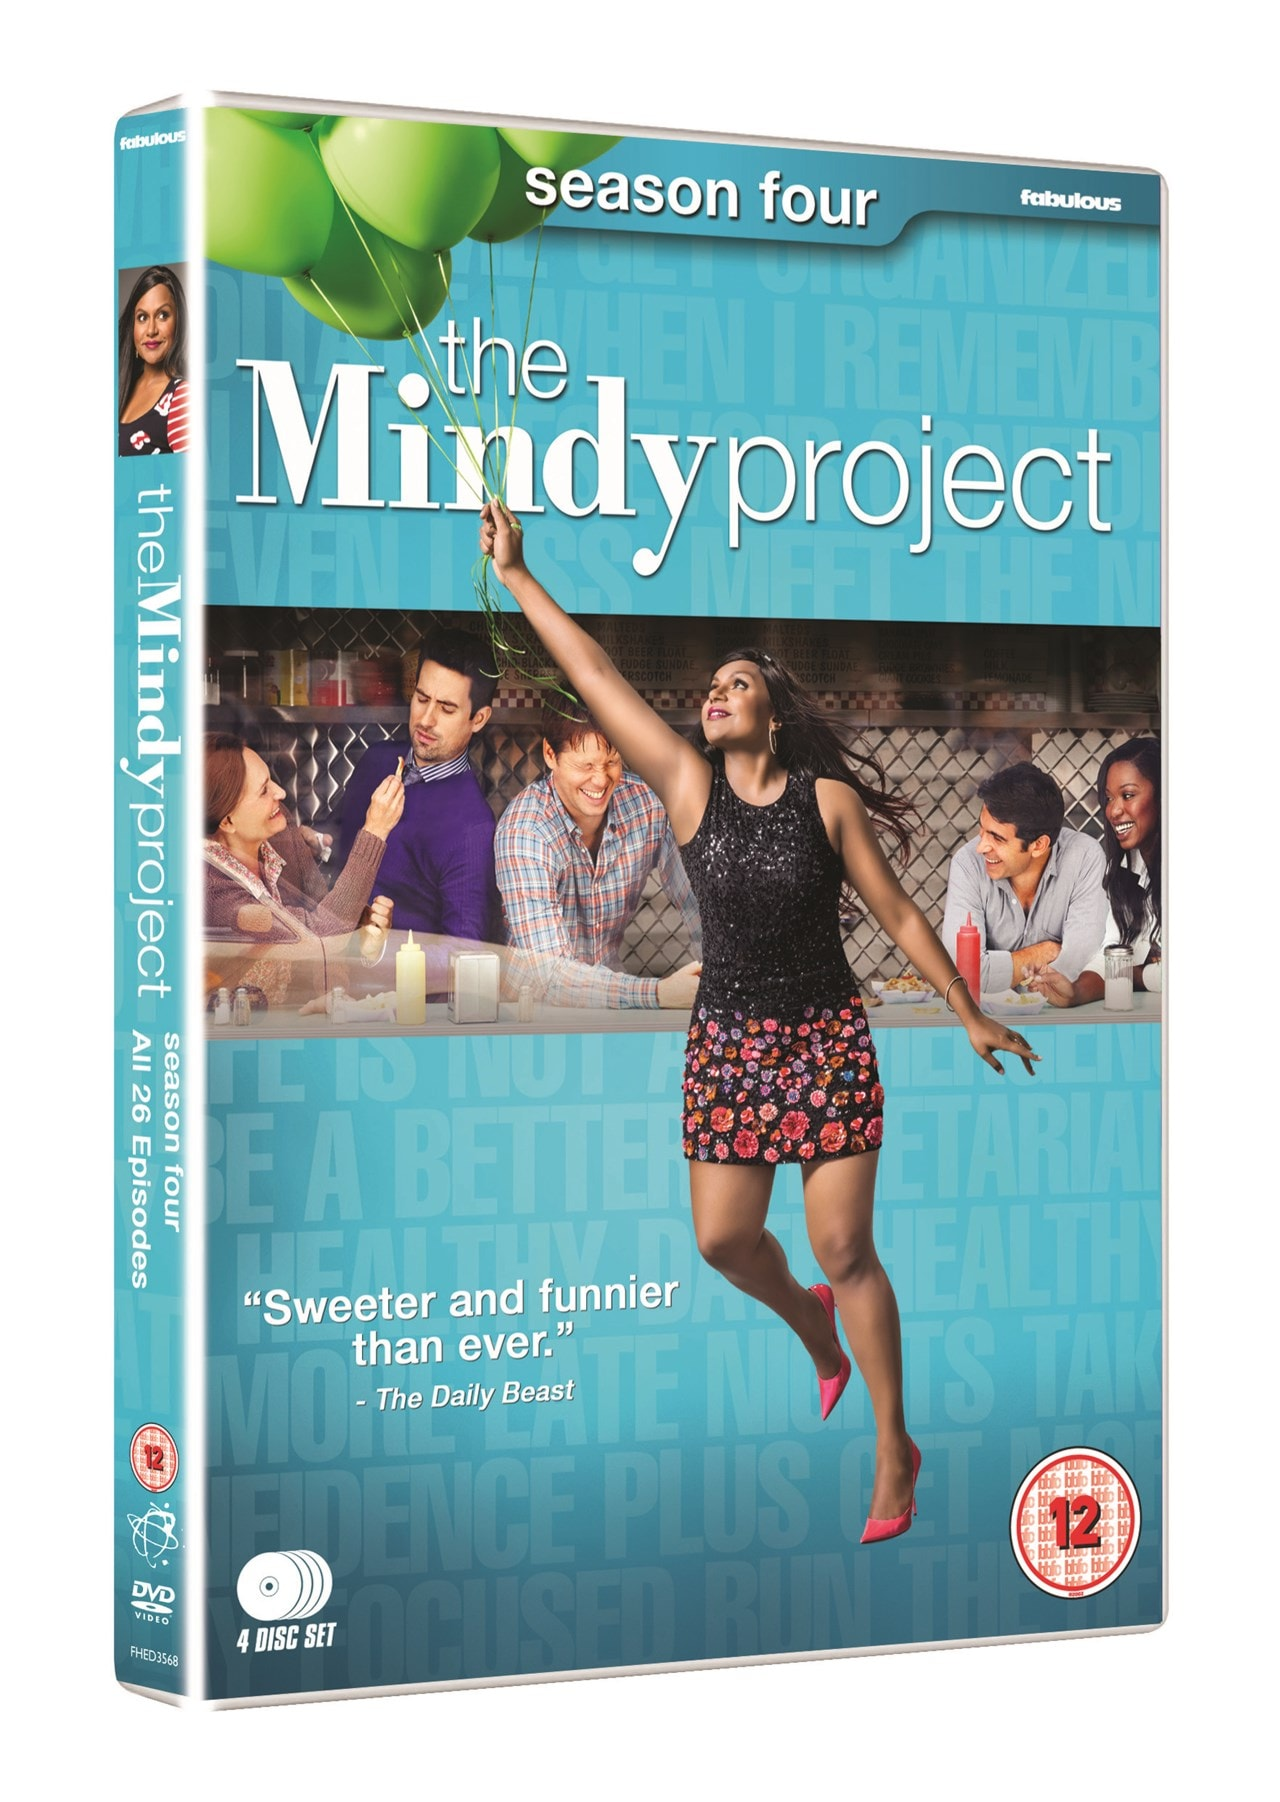 The Mindy Project: Season 4 - 2